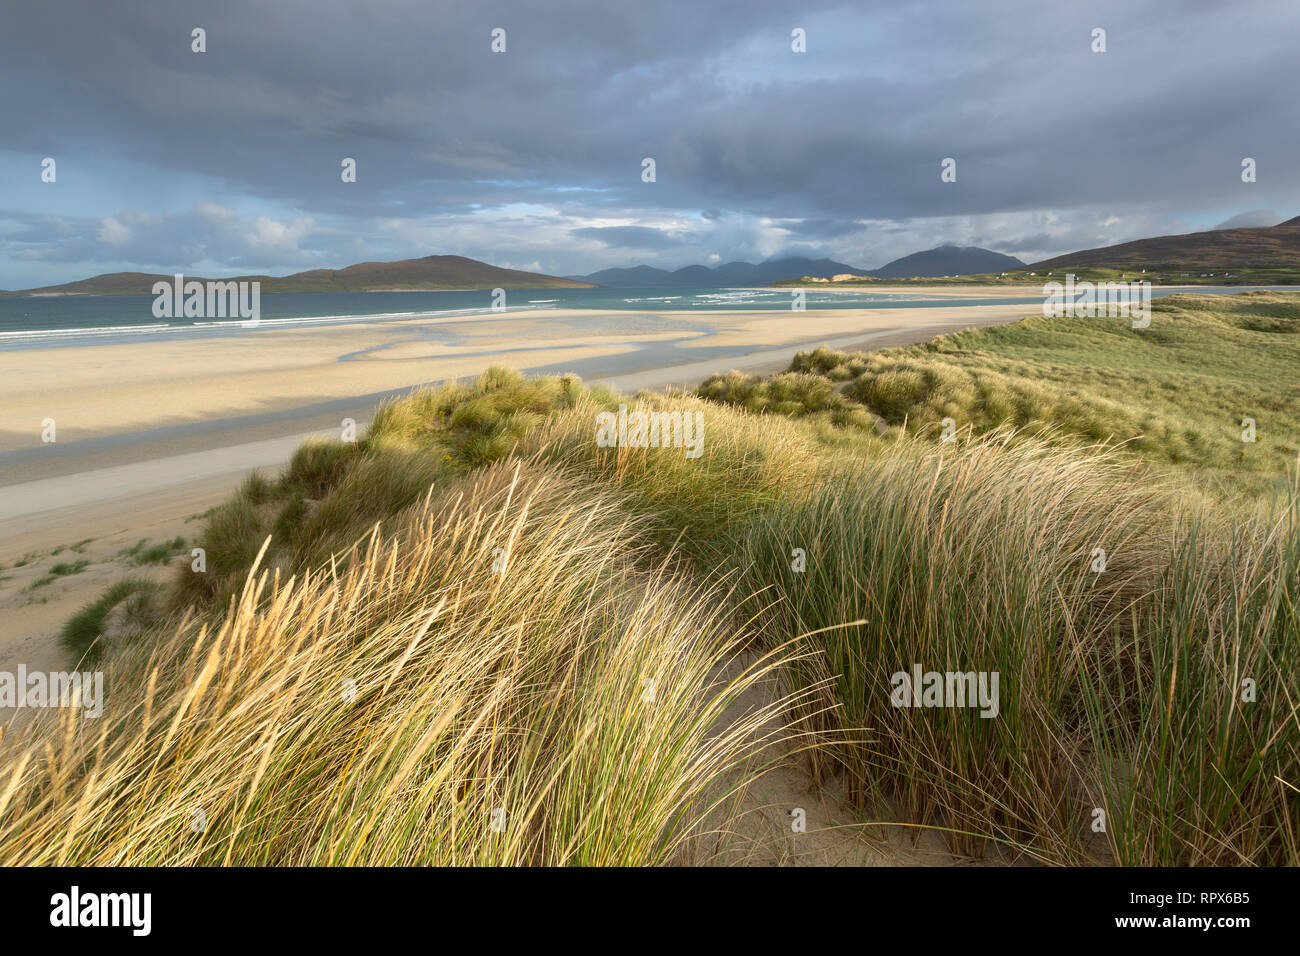 A windy morning on the dunes at Seilebost, Isle of Harris, Outer Hebrides, Scotland - Stock Image